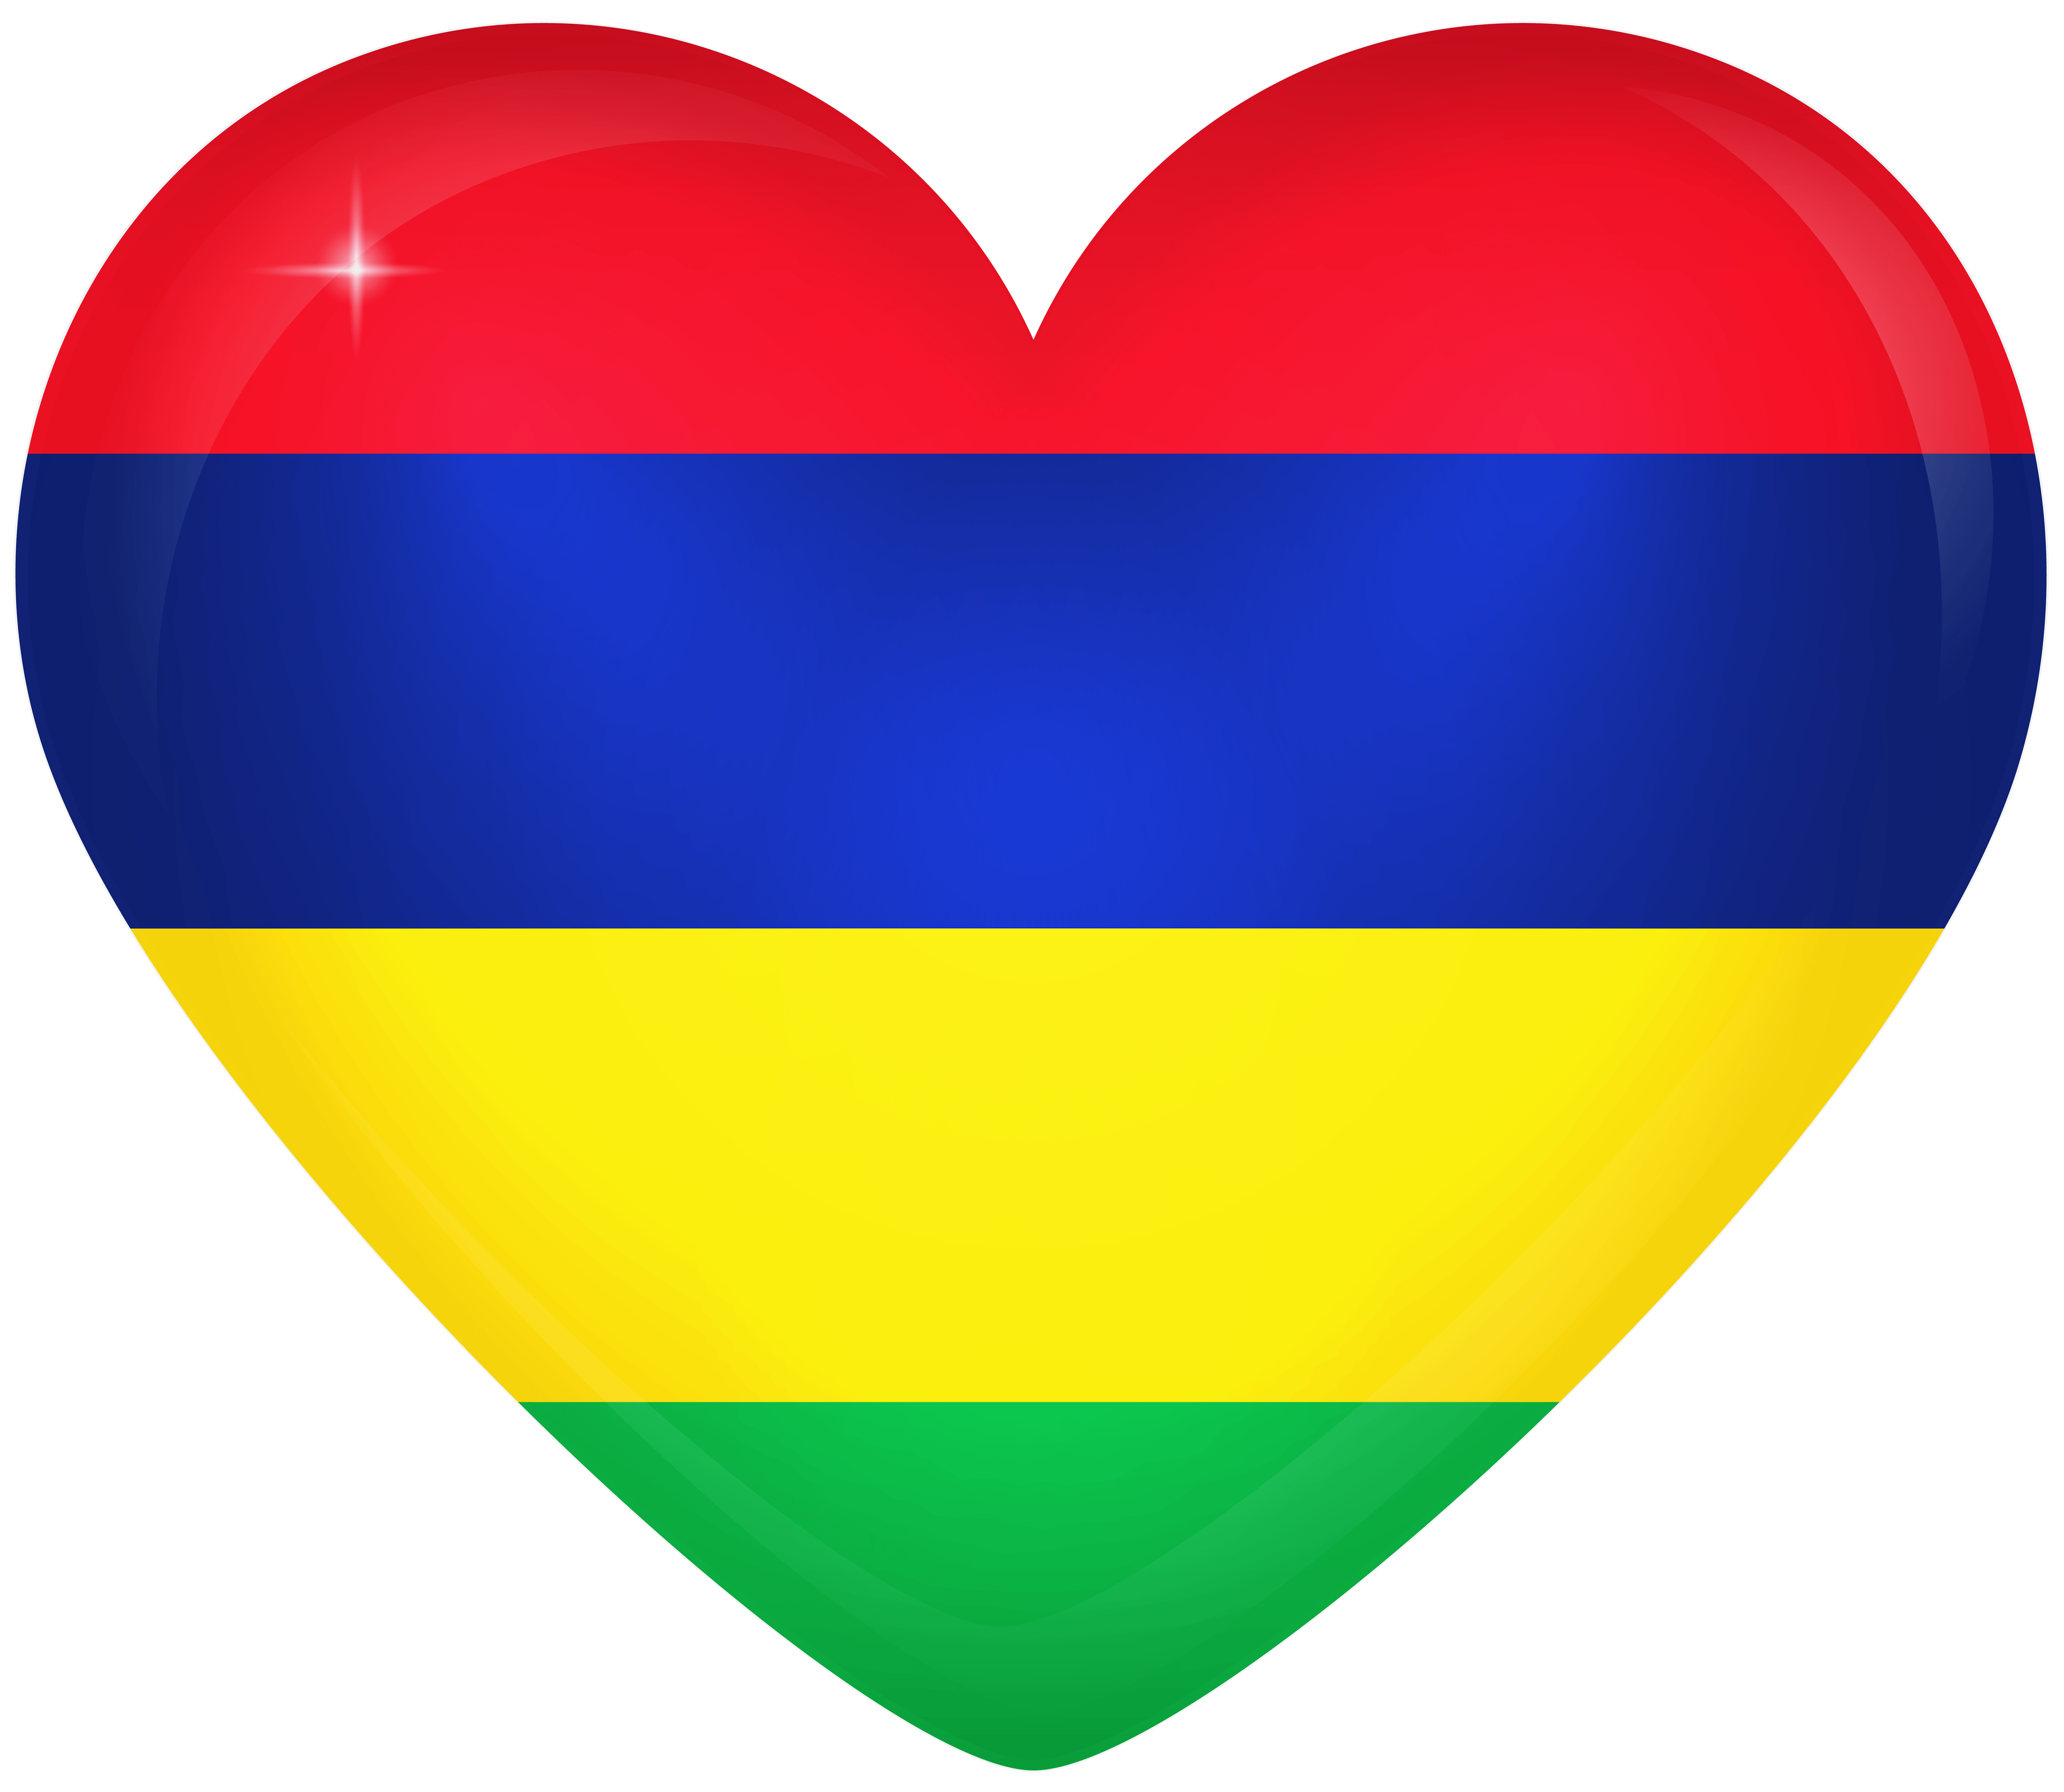 Mauritius Large Heart Flag | Gallery Yopriceville - High-Quality ...